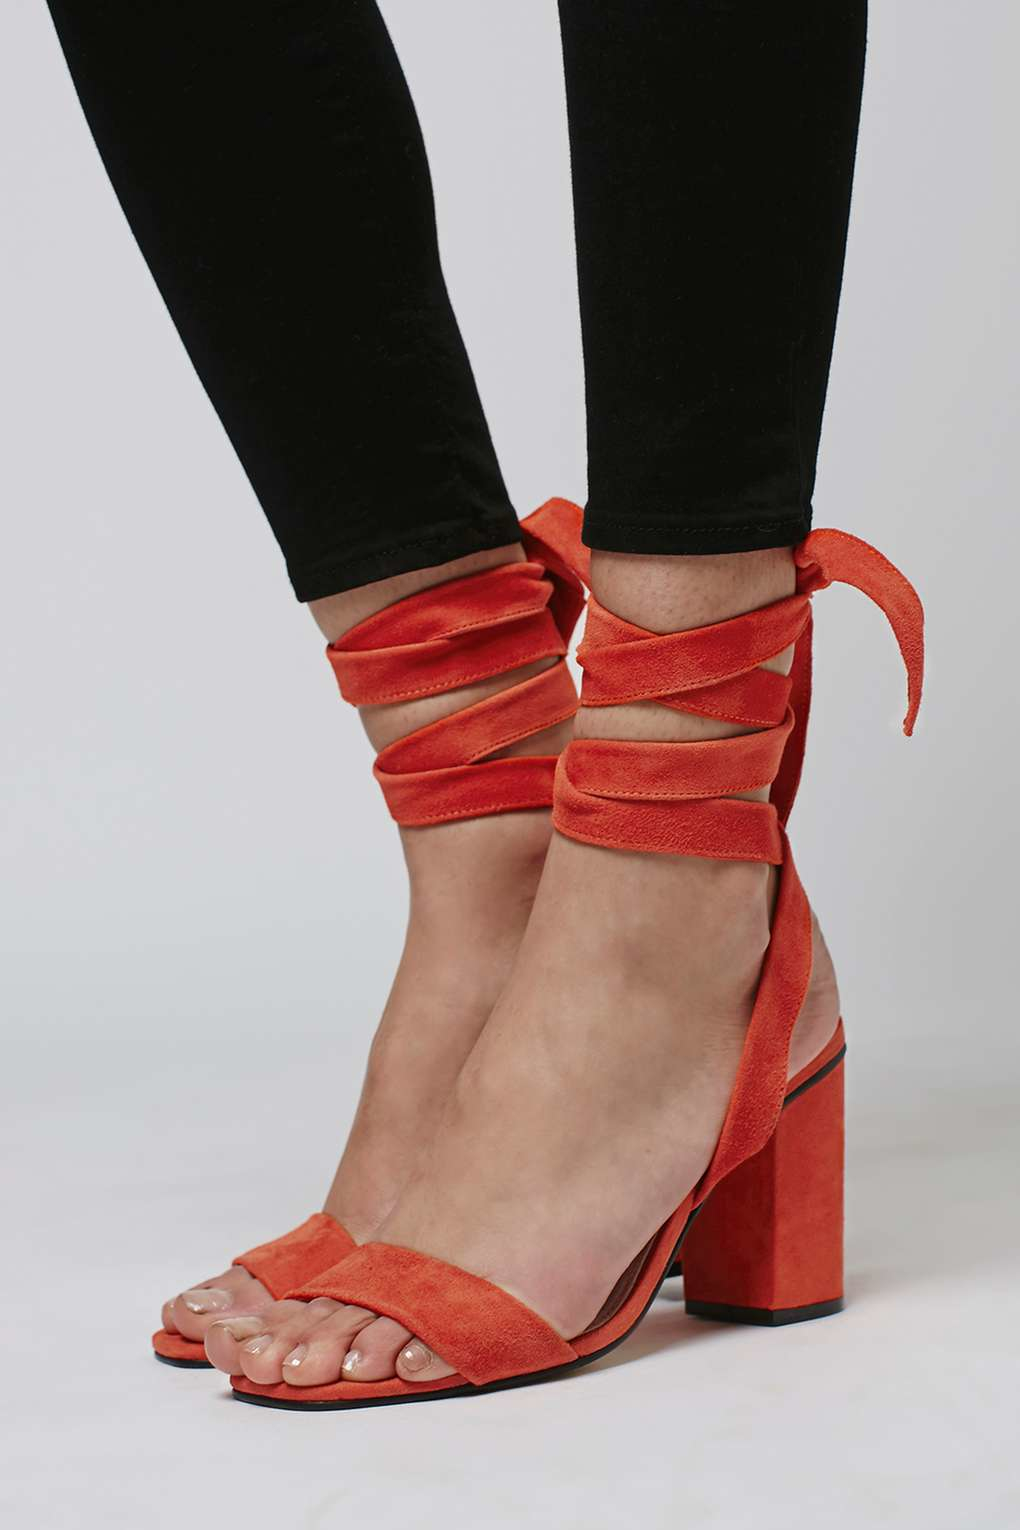 Lyst Topshop Rapping Ankle Tie Sandals In Red